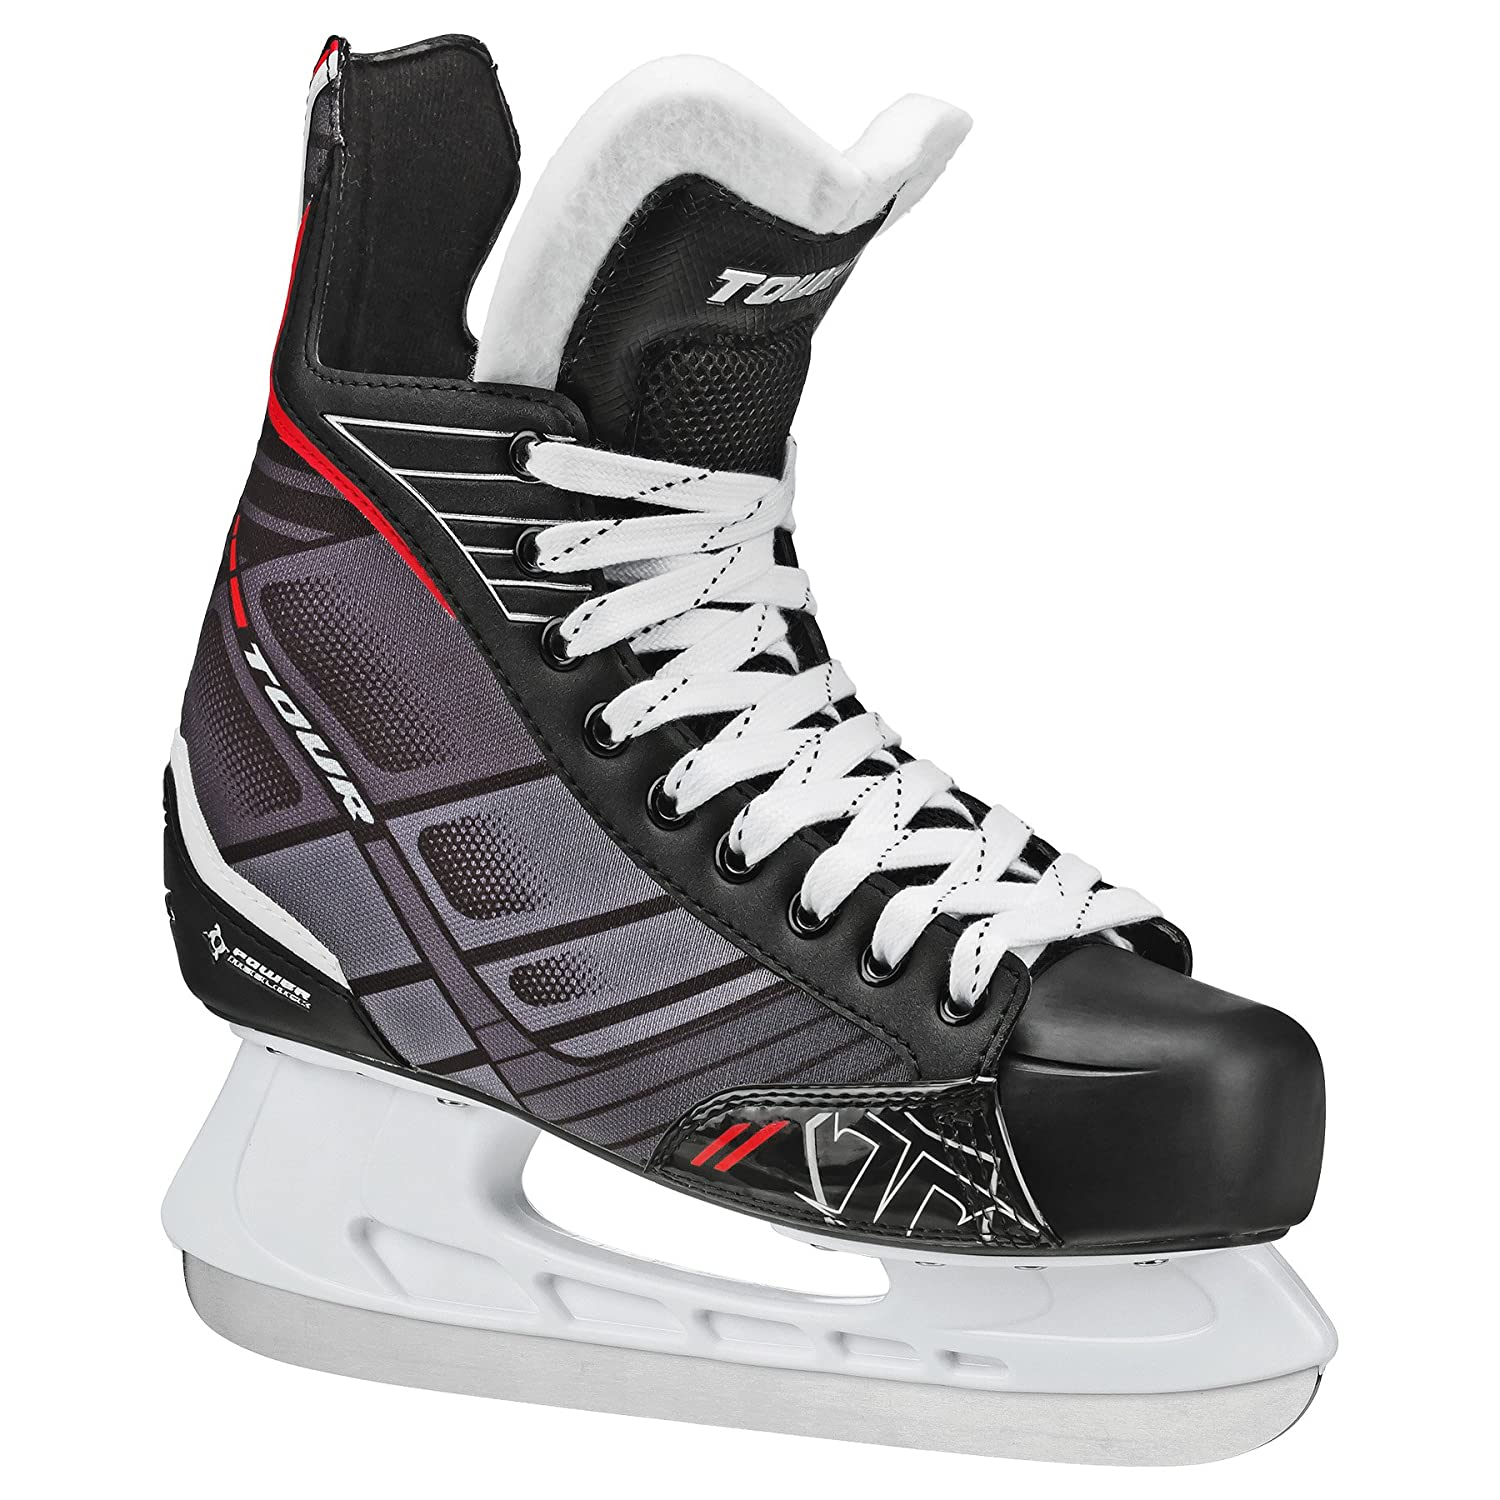 The Best Hockey Skates 2